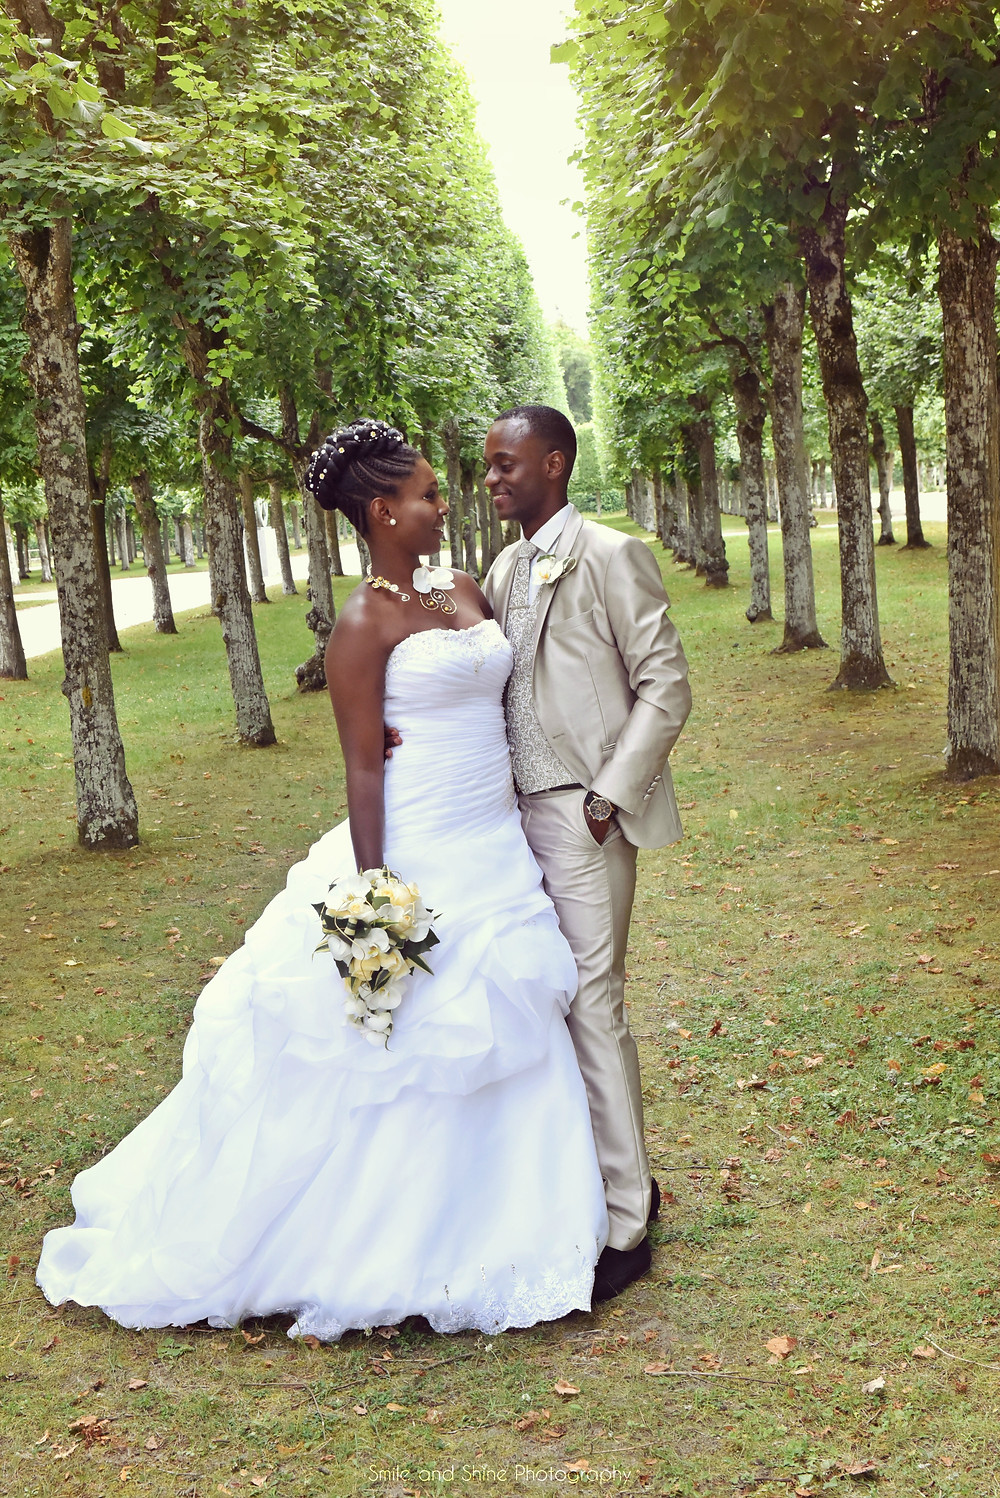 Photographe de mariage Guadeloupe. Mariage Guadeloupe. Photographe Guadeloupe. Smile and Shine Photography. Mariage a Paris. Photographe mariage Paris